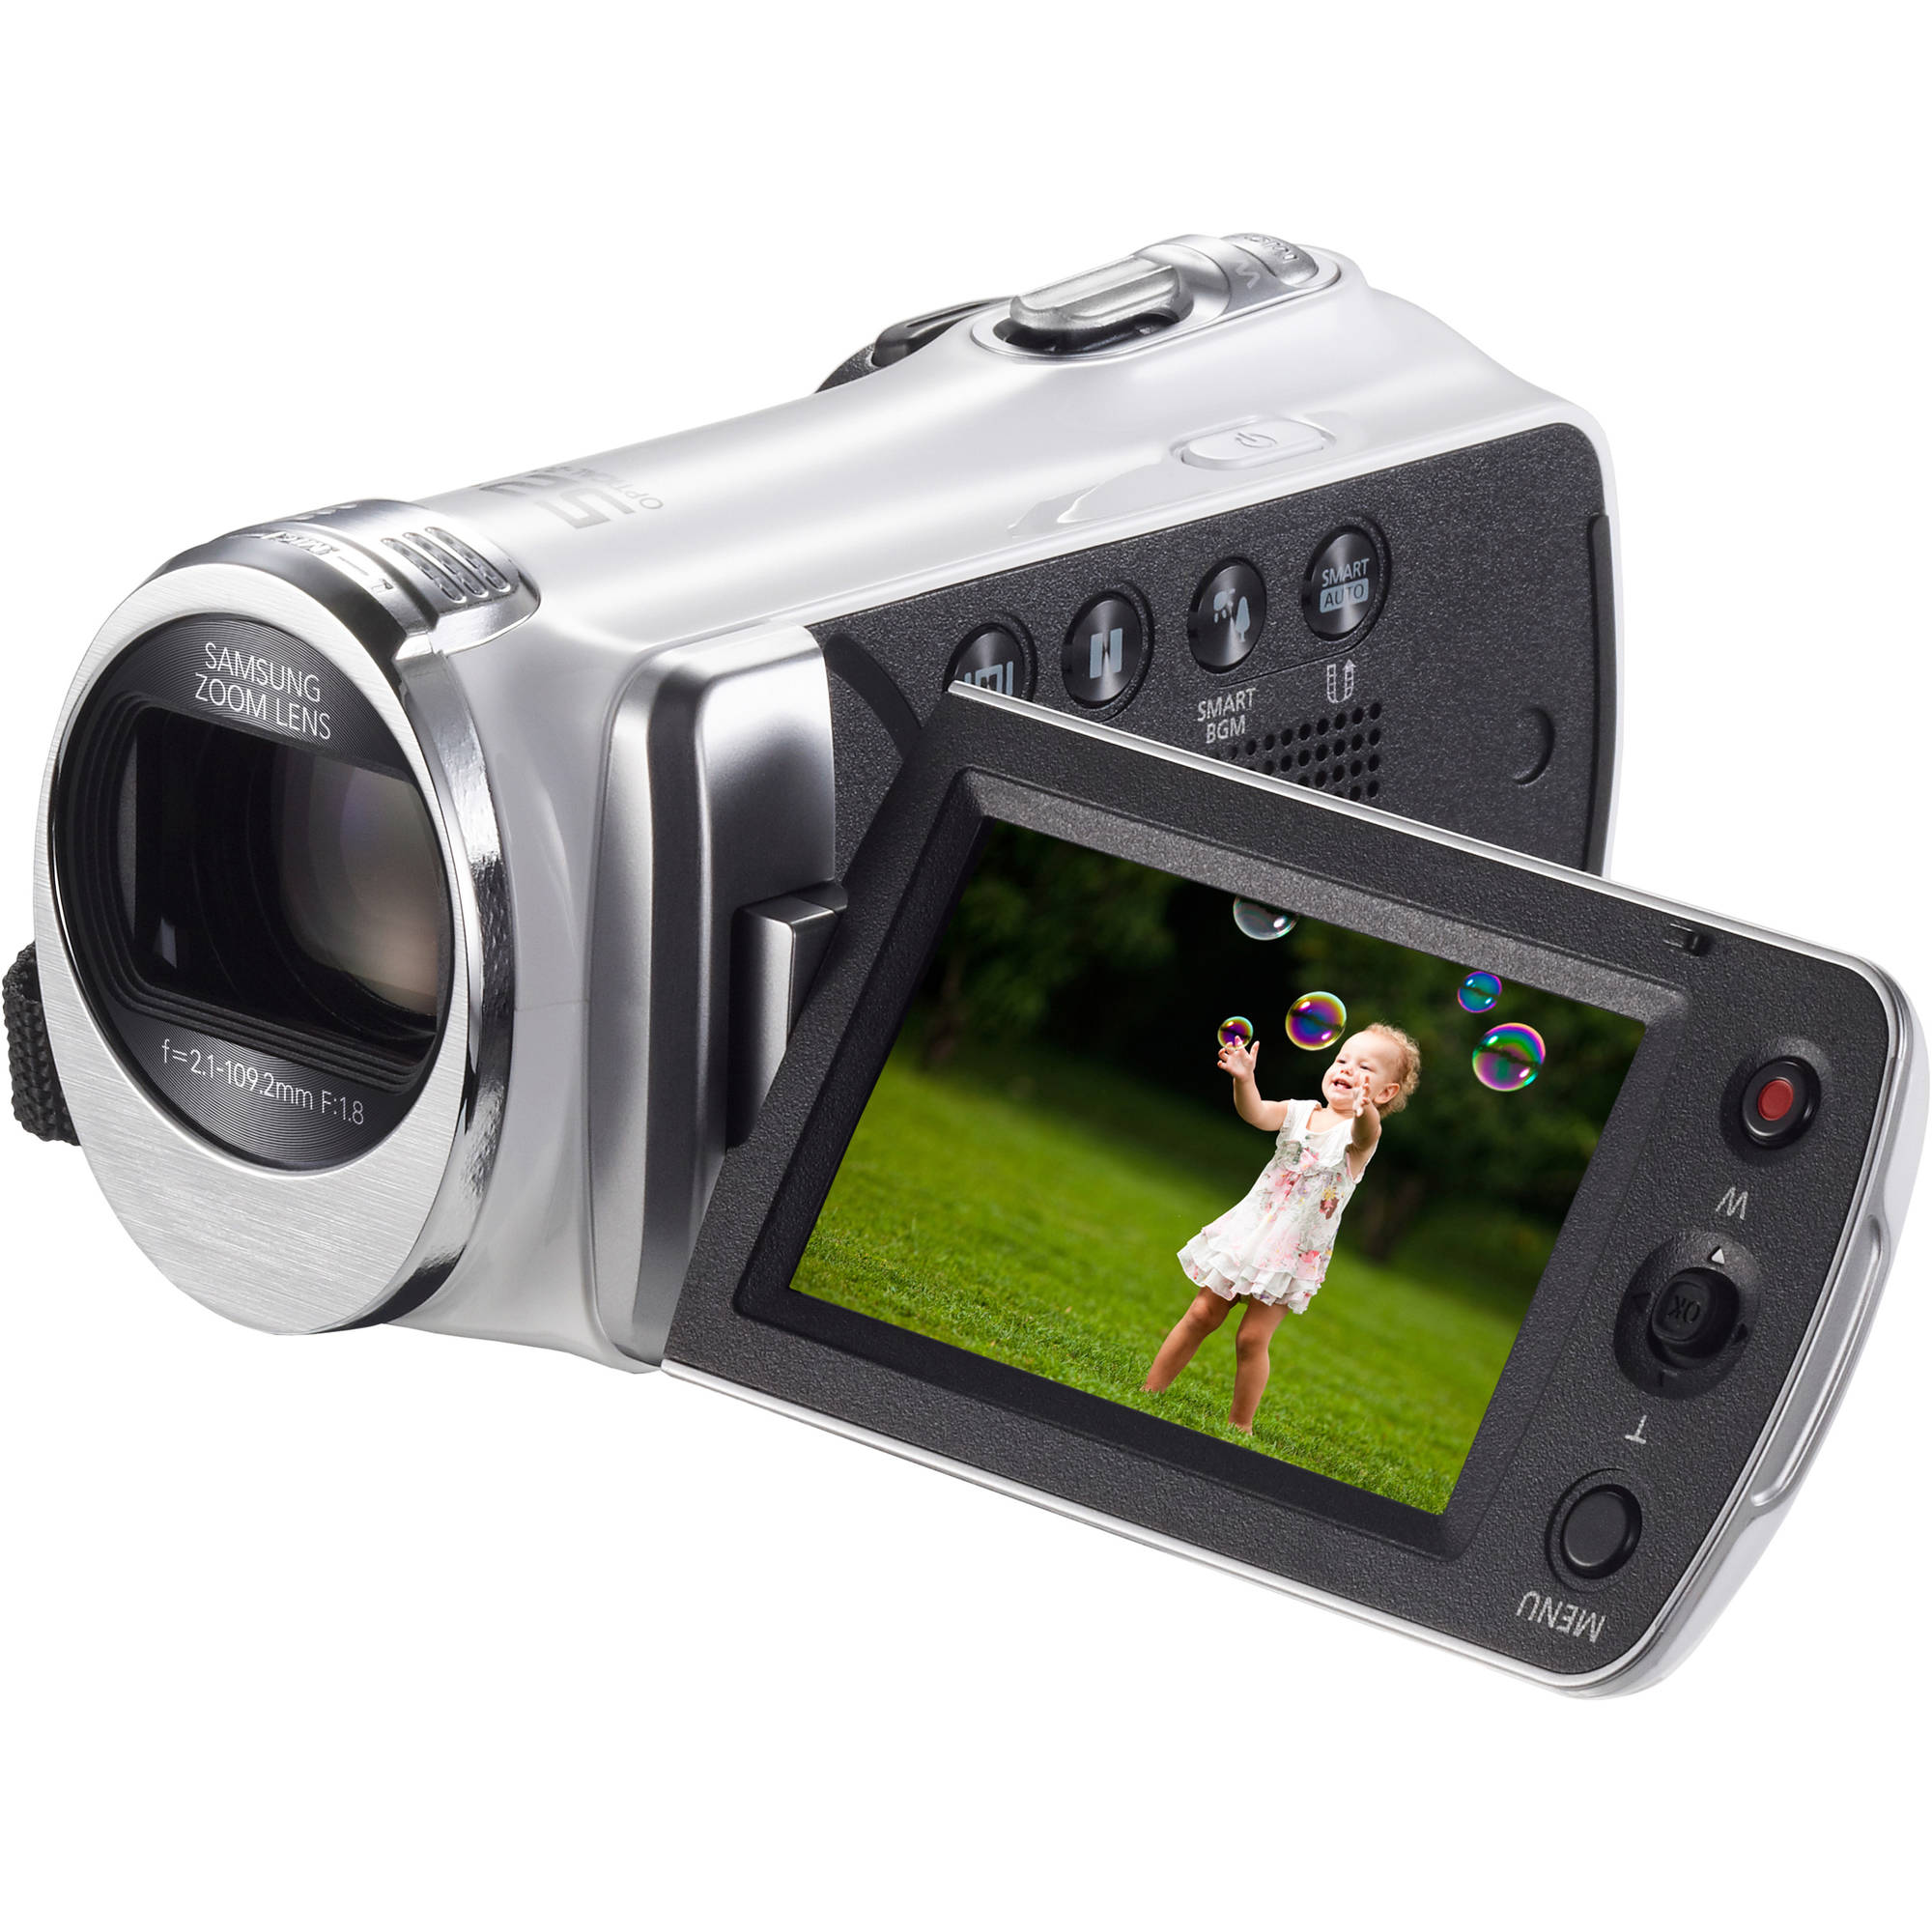 "Samsung White HMX-F90 HD Camcorder with 52x Optical Zoom, 2.7"" LCD Display"